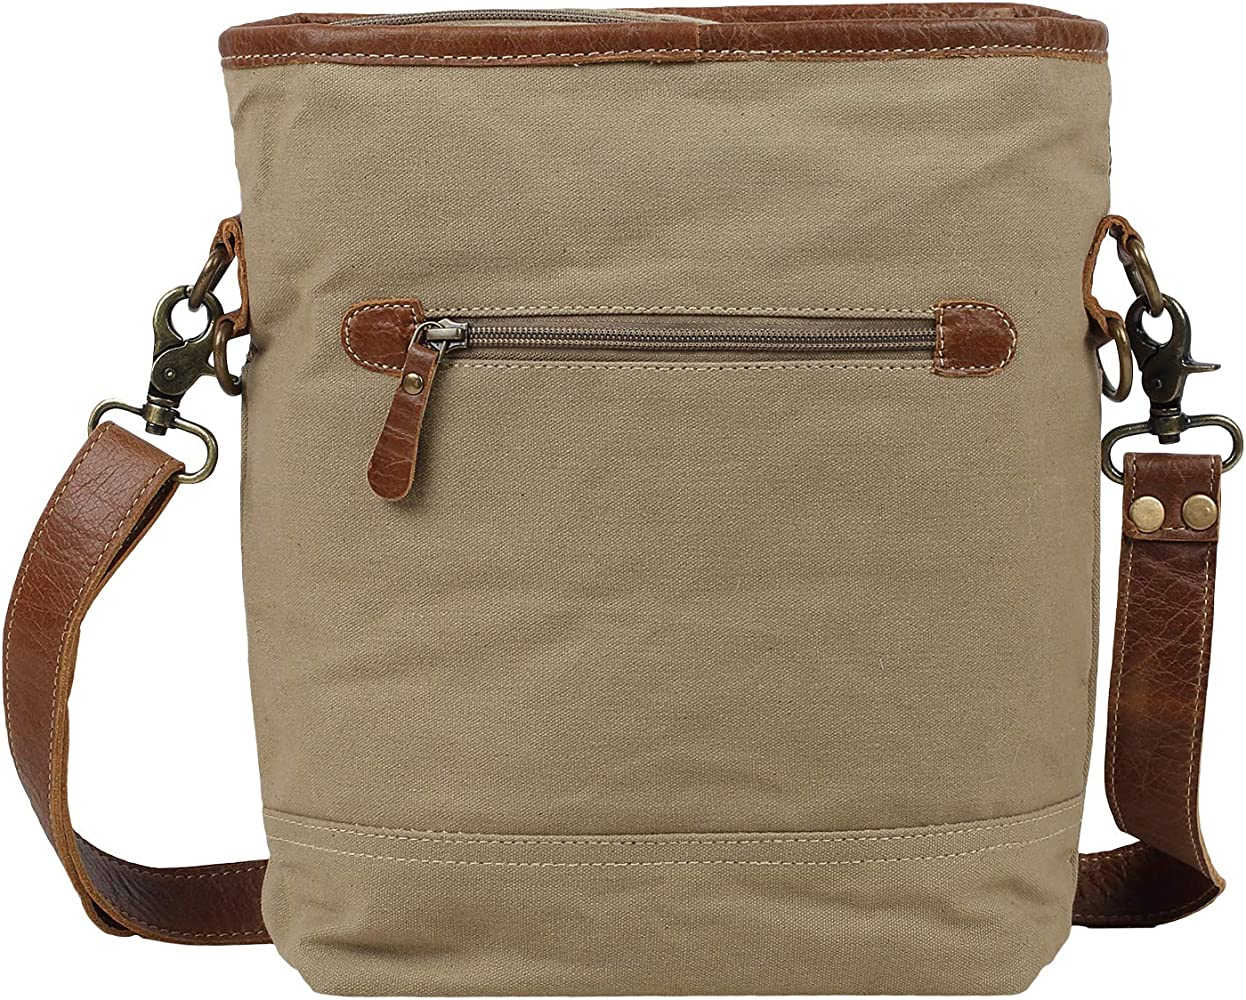 Myra Bag Mosavo Upcycled Canvas Leather Shoulder Bag S 1579 Handbags Amazon Com We're very pleased to announce the myra bag collection has arrived at linda's stuff, first in canada to be offering this collection. amazon com